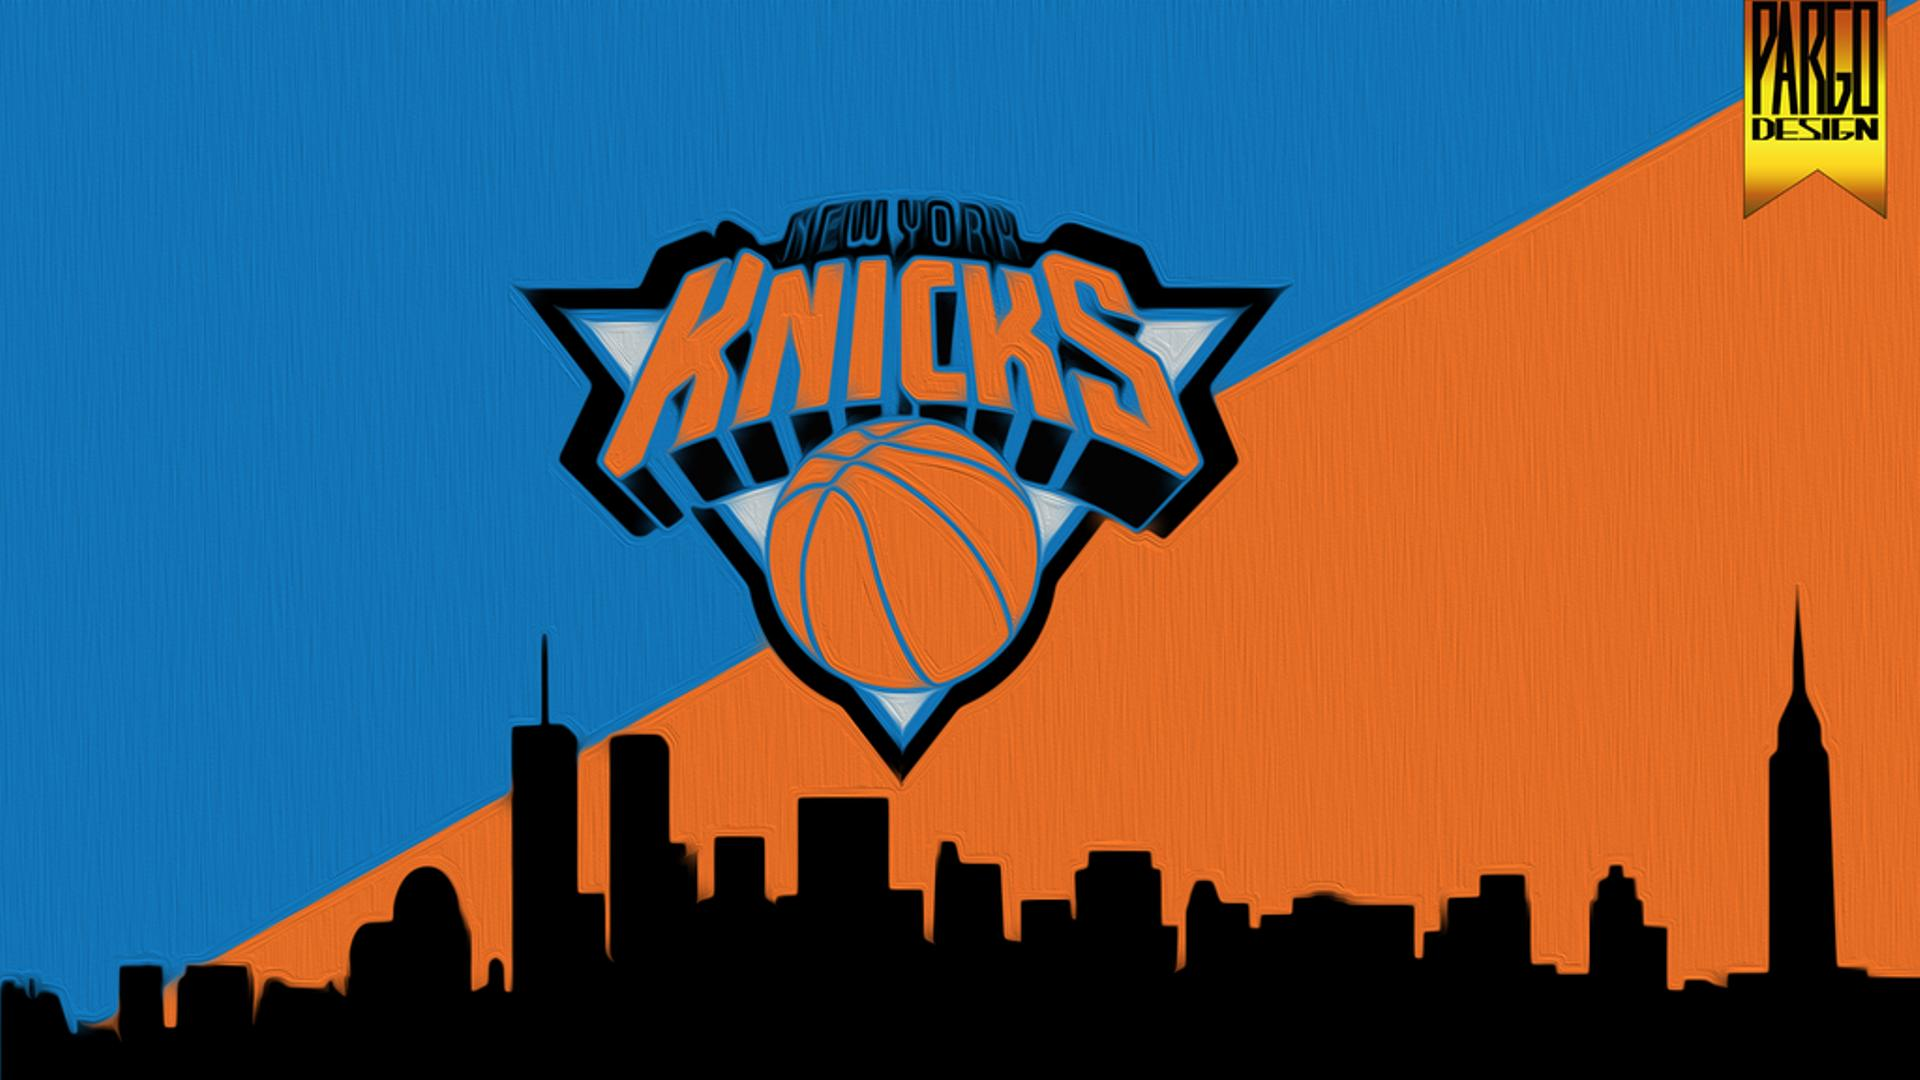 1920x1080 - New York Knicks Wallpapers 13